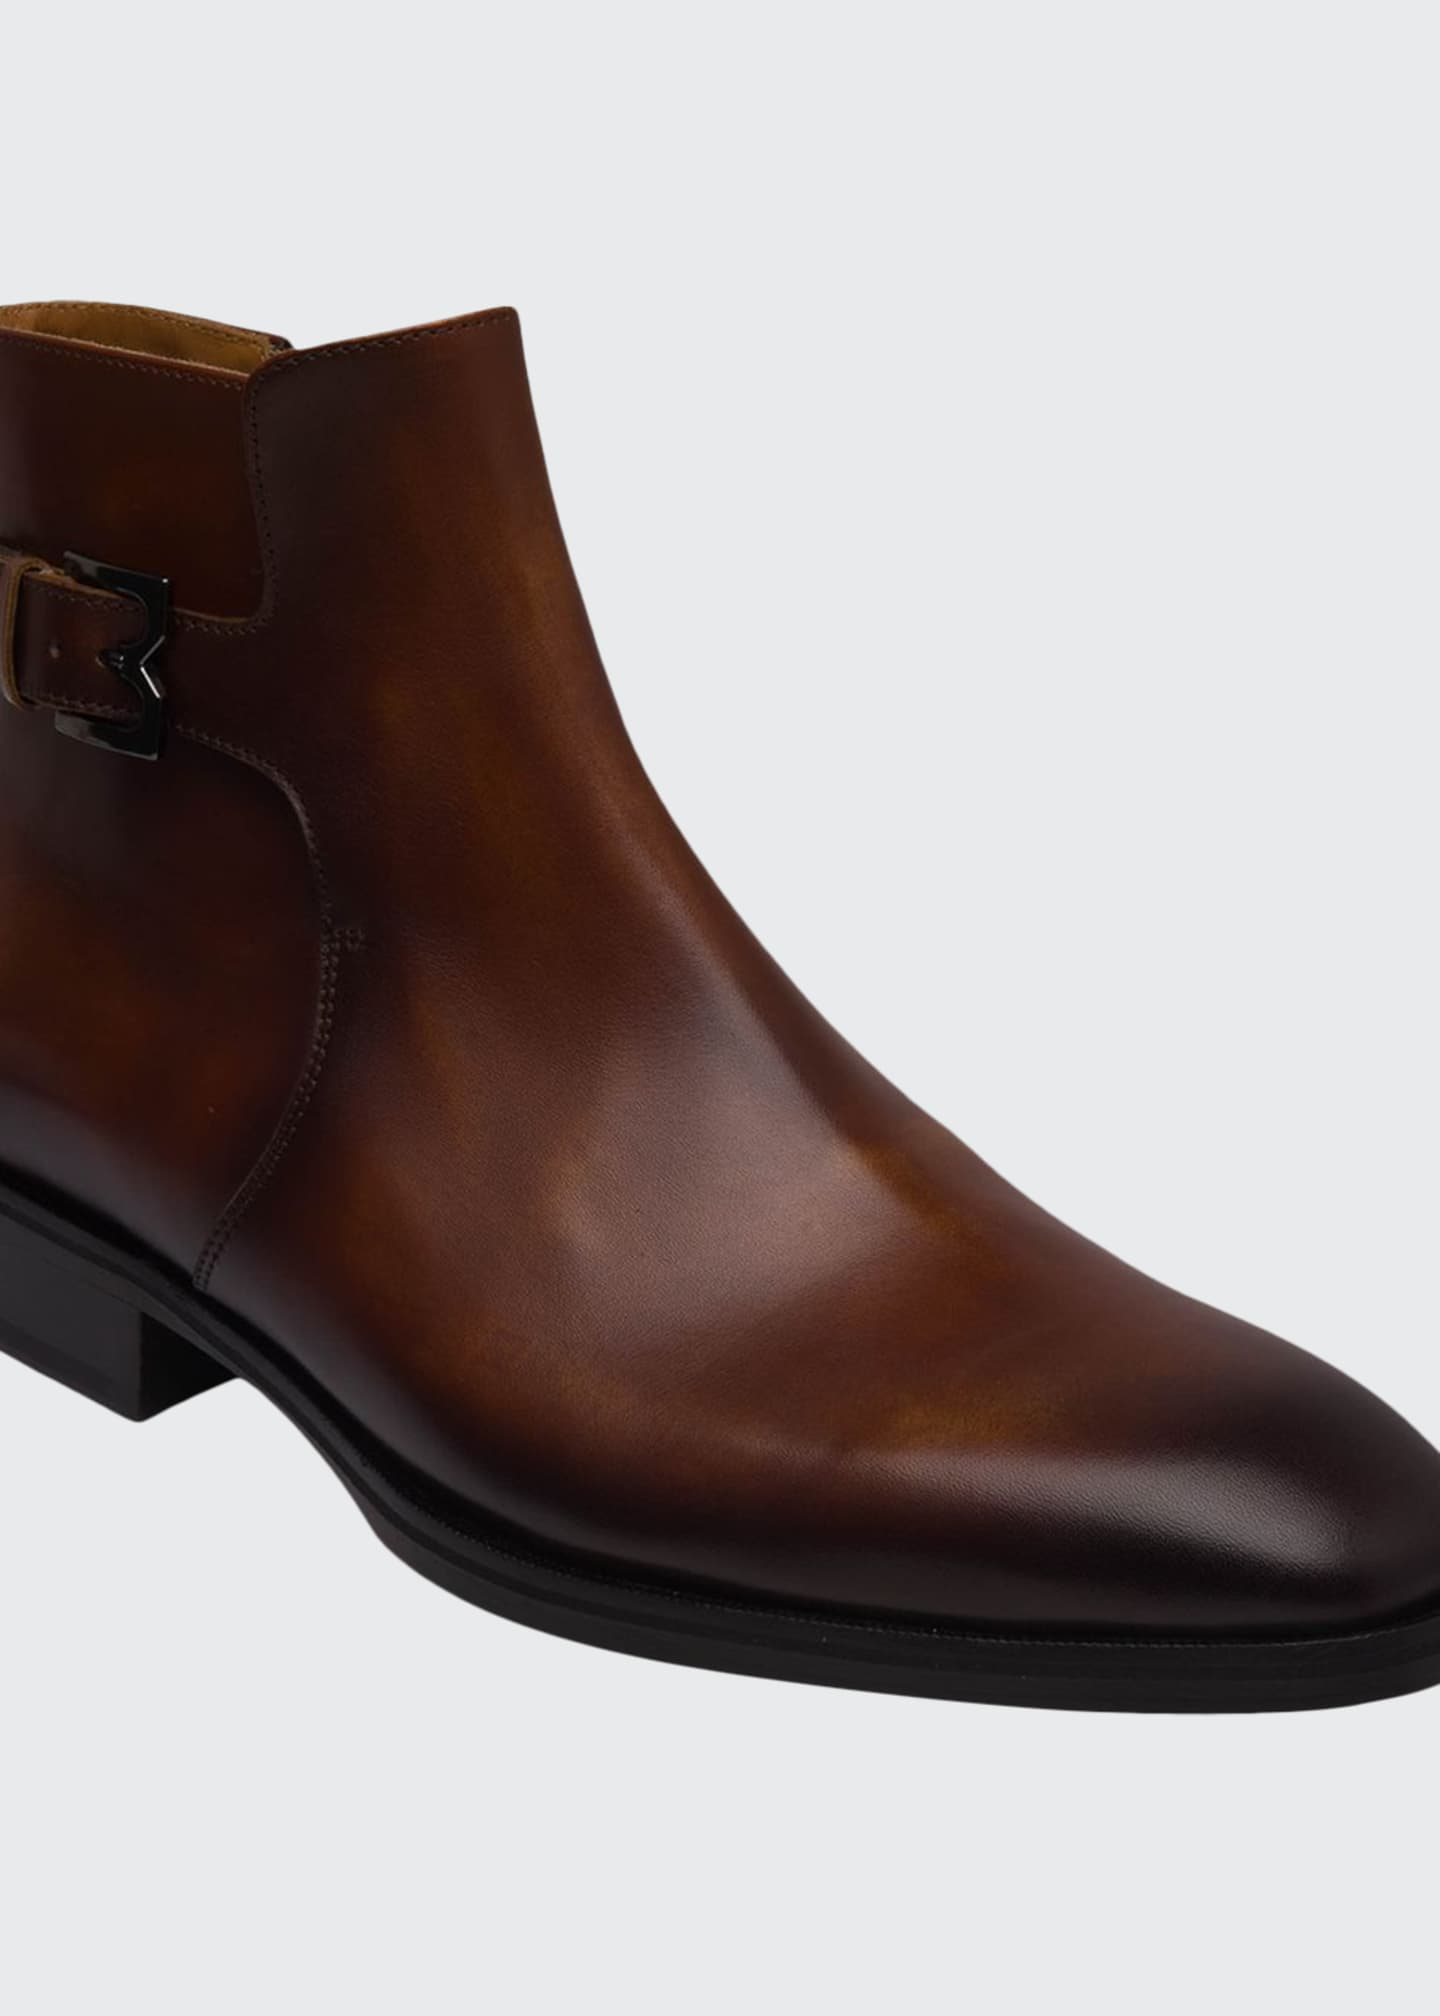 Bruno Magli Men's Angiolini M-Buckle Burnished Leather Ankle